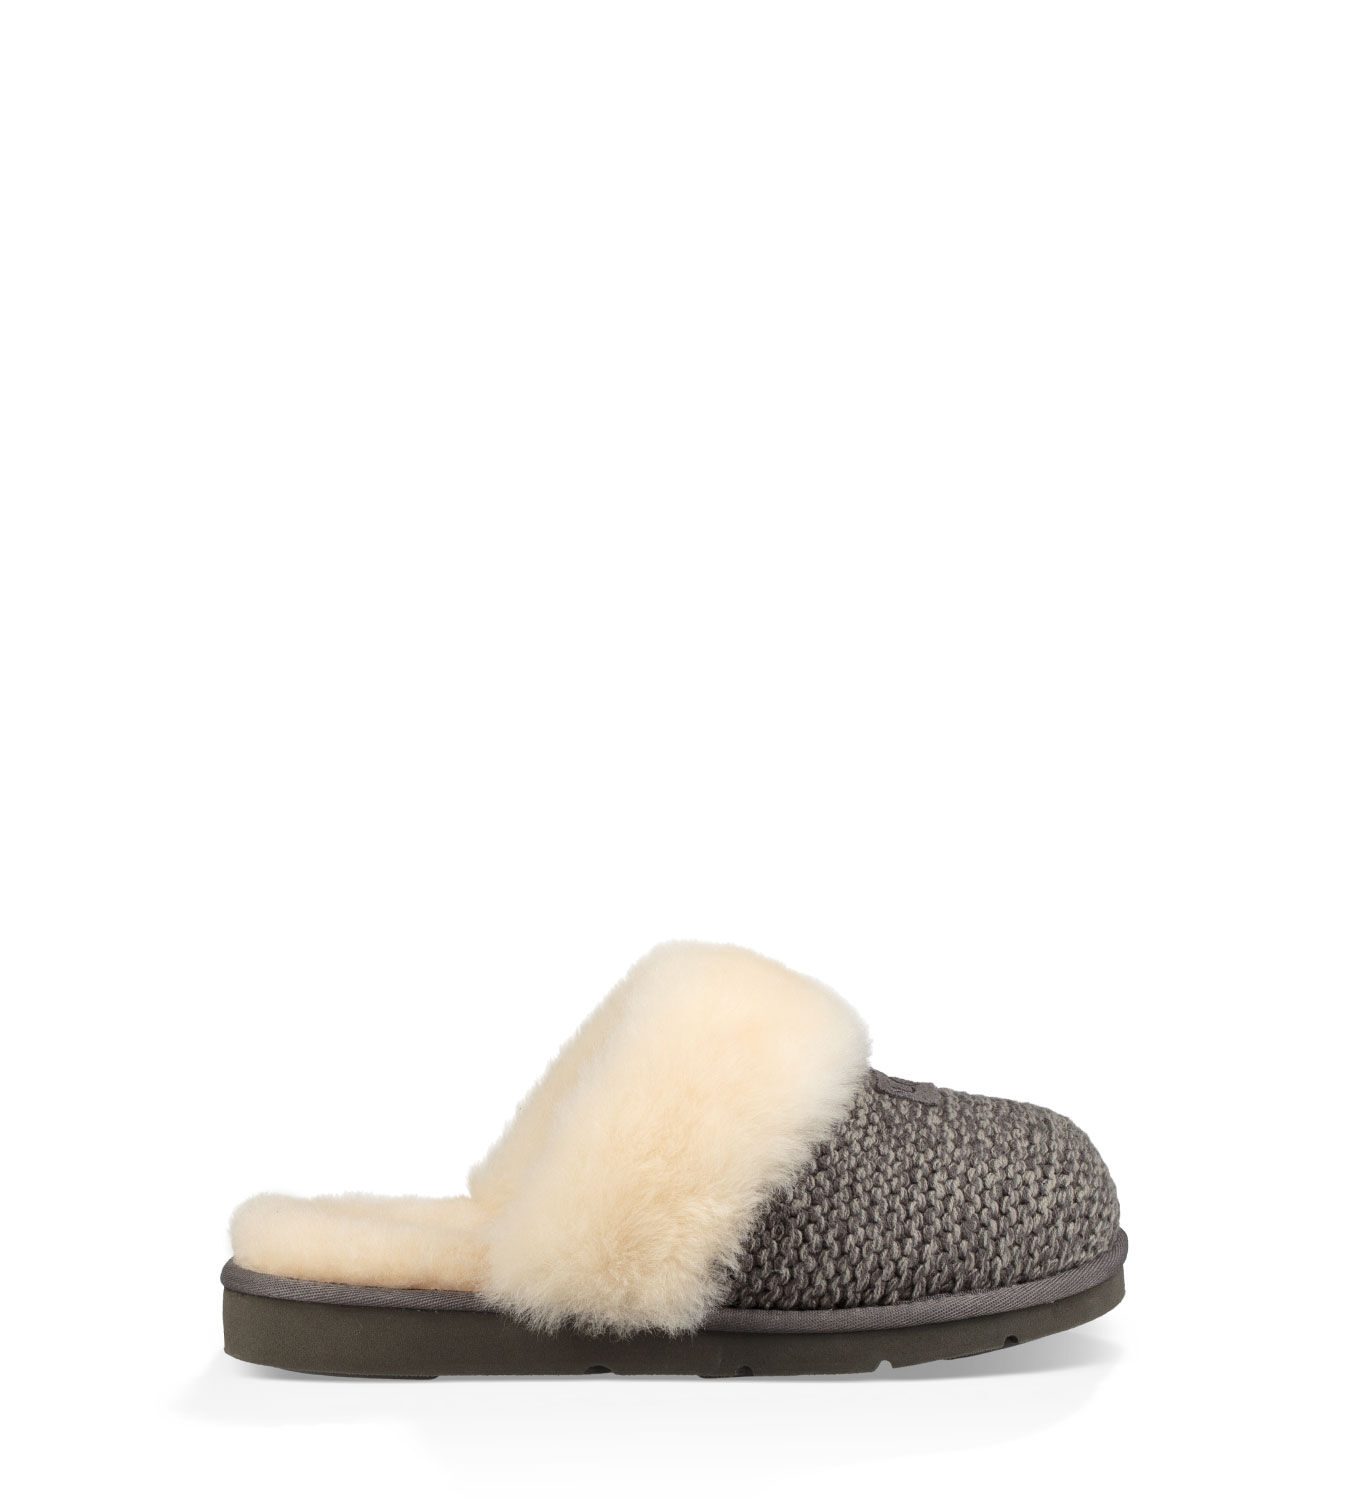 chausson ugg femme laine